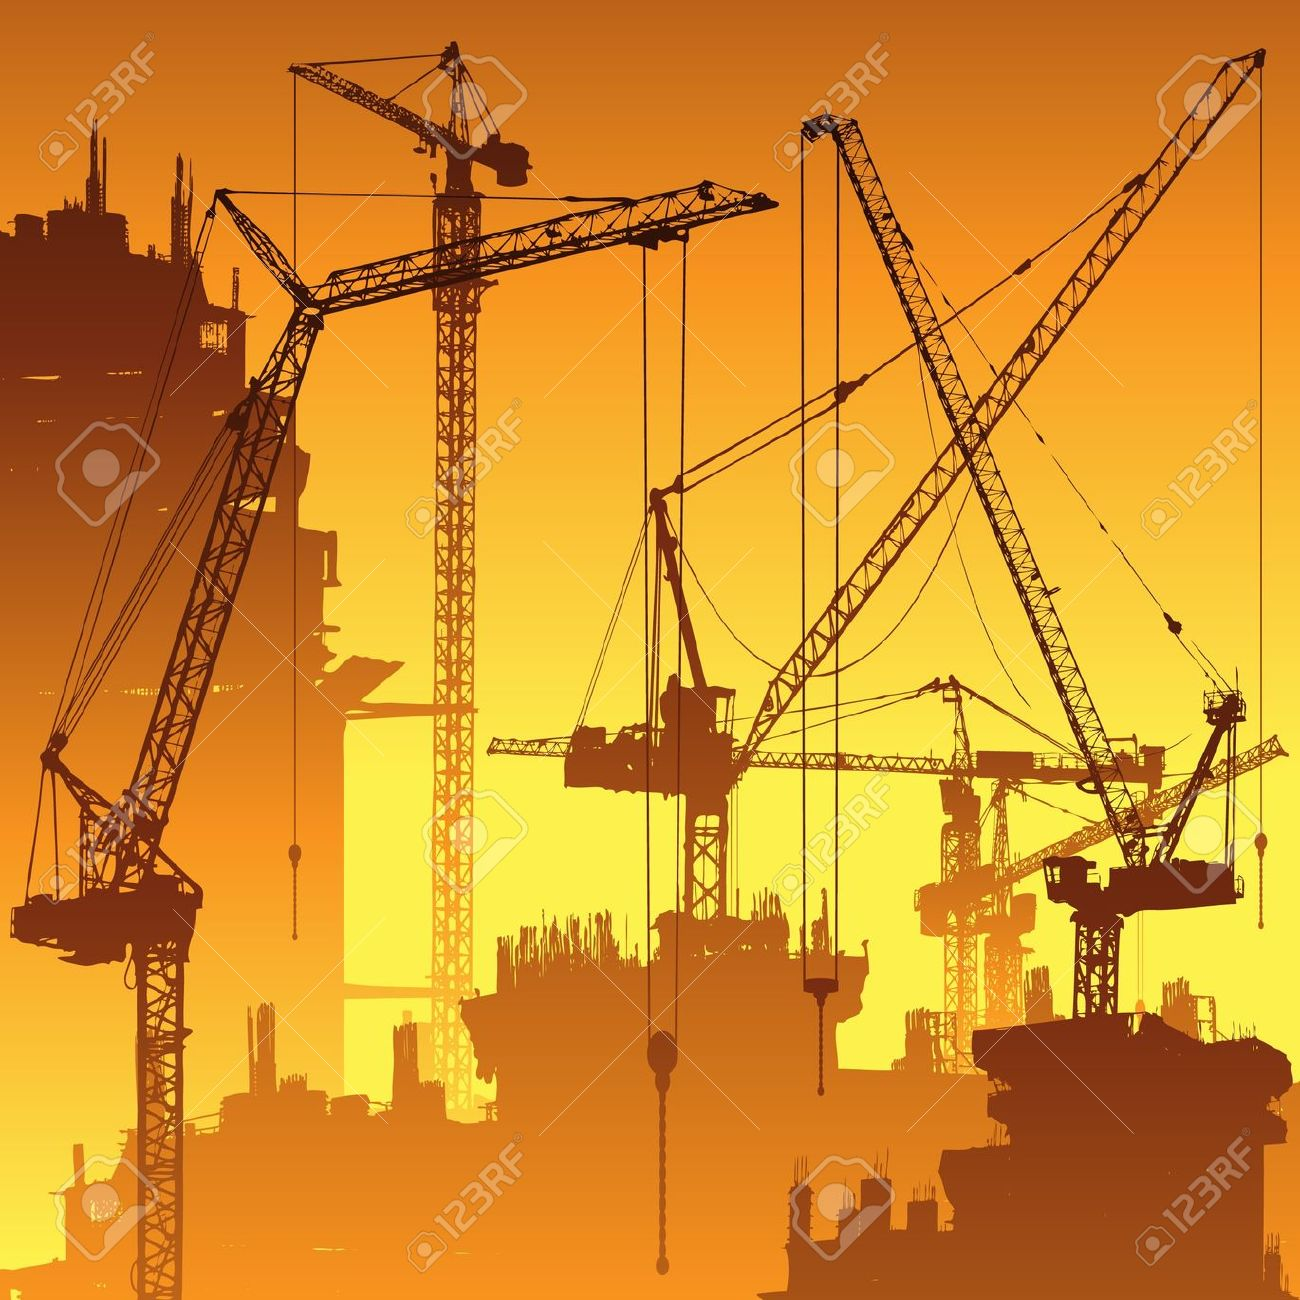 Tower Crane Vs Mobile Crane : Tower construction clipart clipground